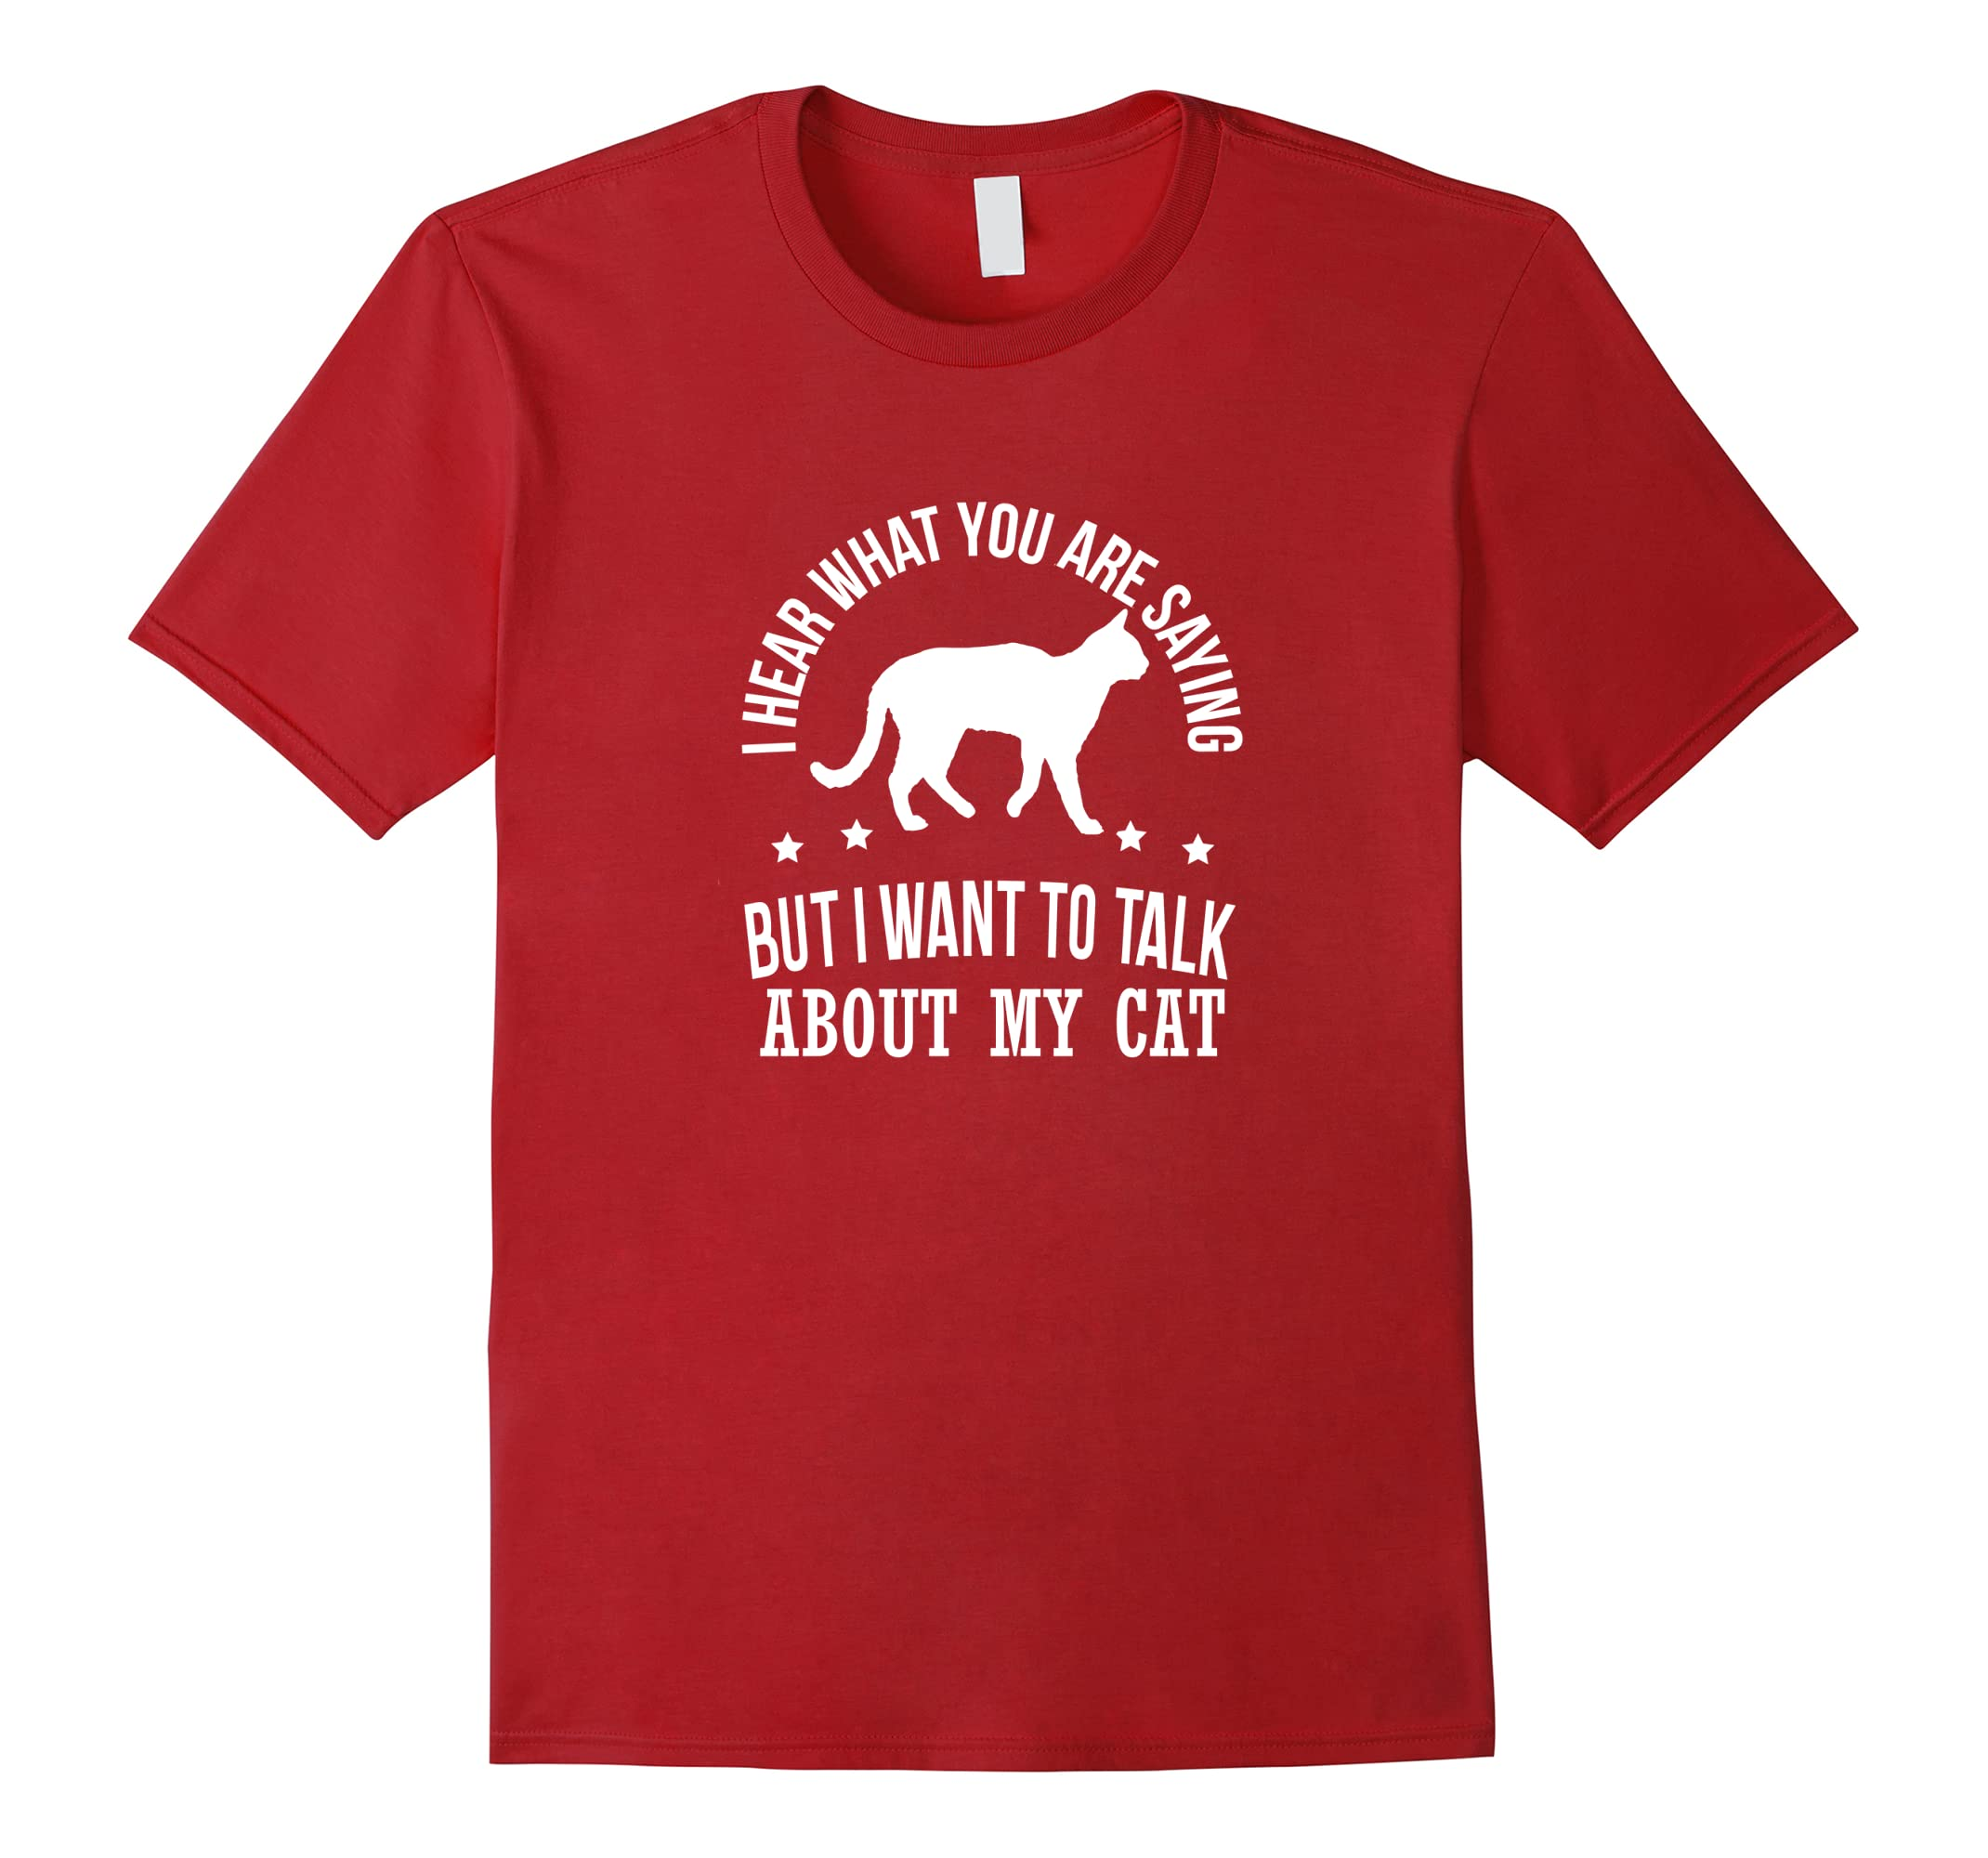 I Hear You But I Want To Talk About My Cat Funny Shirt-RT